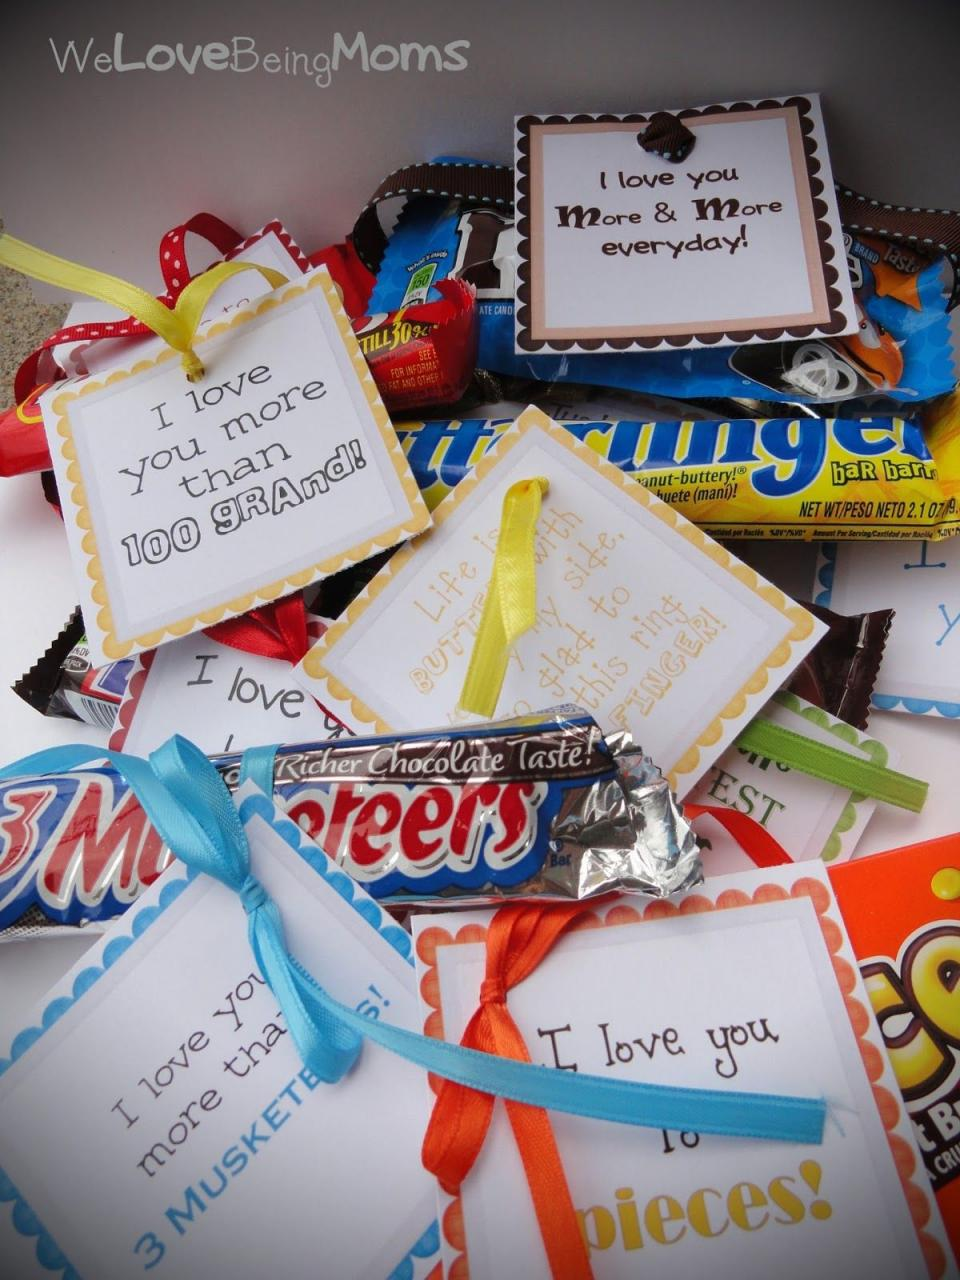 For The Candy Station So Many Cute Sayings To Go With The Most Popular Candy Bars Includes The Tags With Saying So All You Have To Do Is Attach It To The